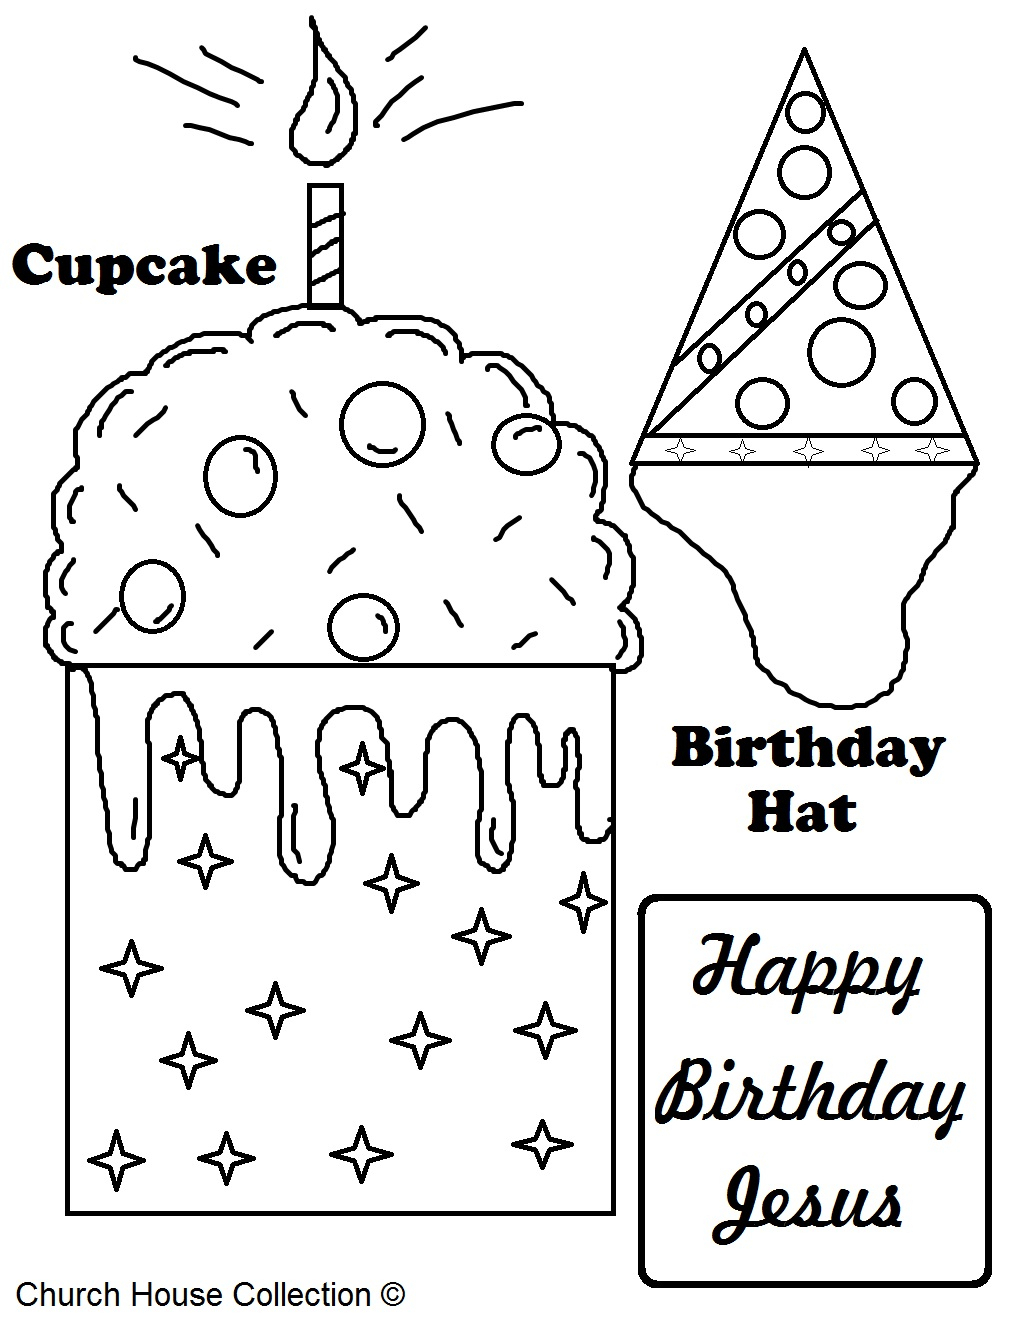 happy birthday jesus coloring sheet ; happy-birthday-hats-coloring-sheets-happy-birthday-jesus-coloring-pages